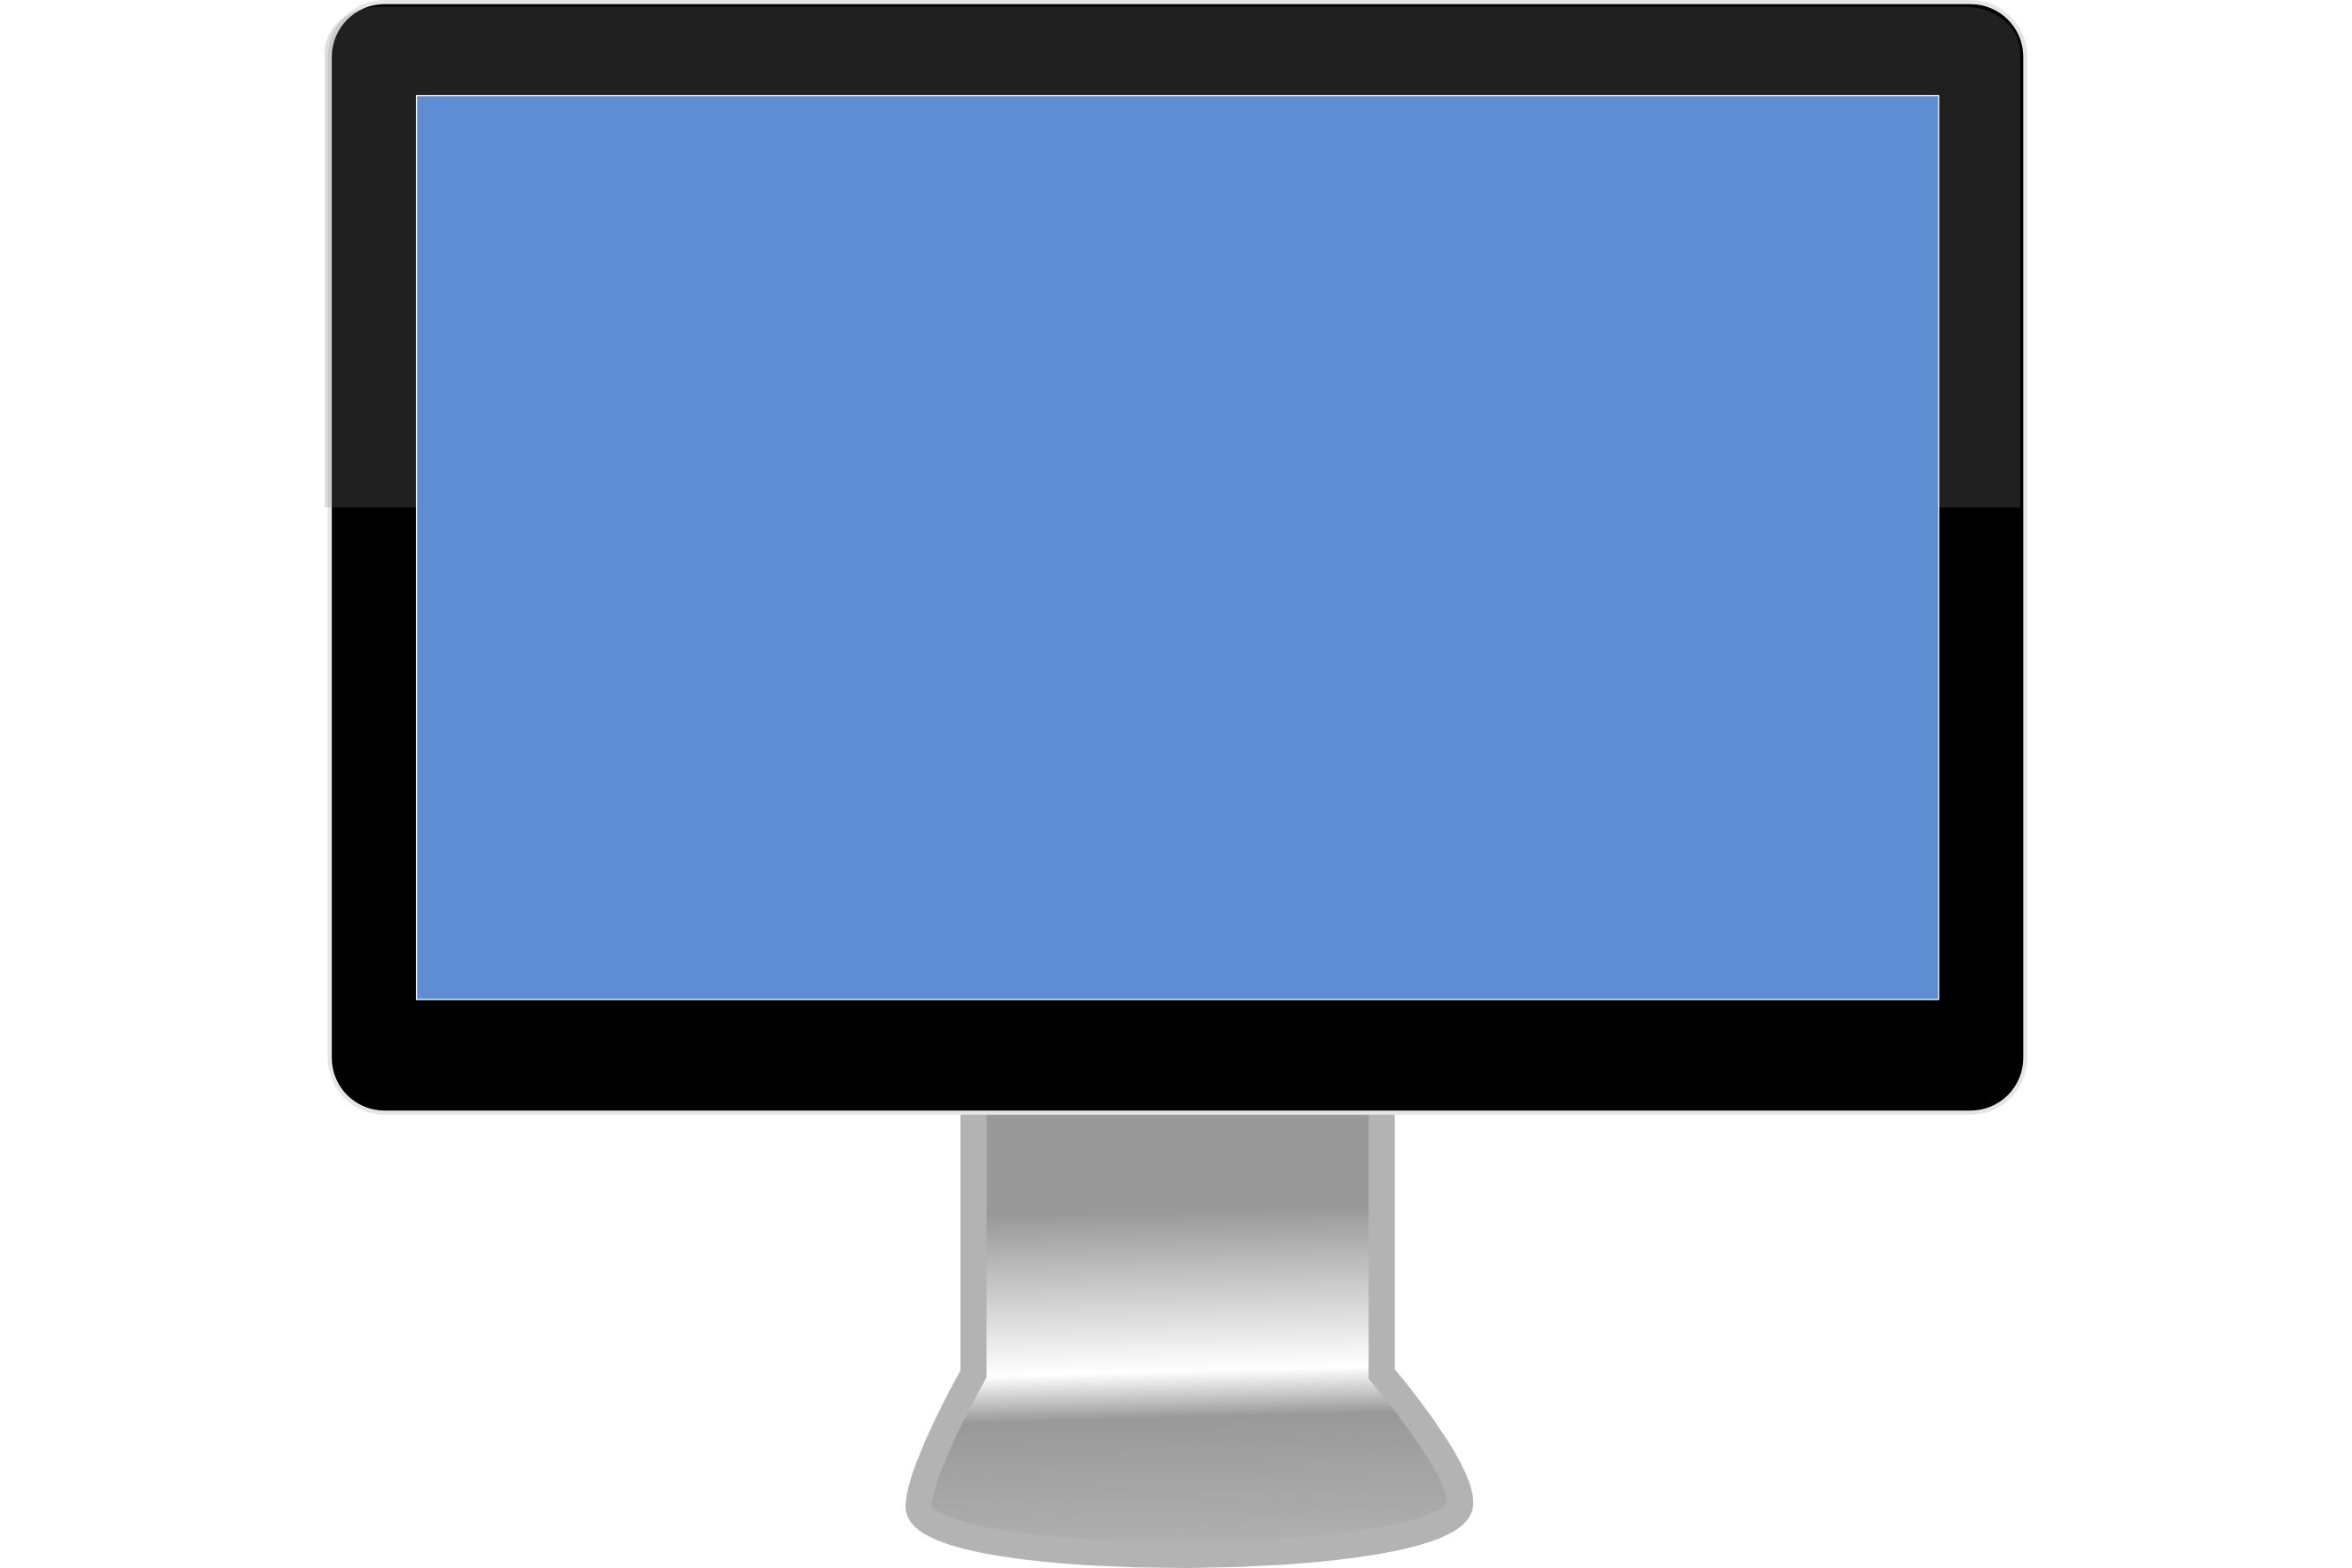 Mac Problems: Stuck at the Blue or Black Screen